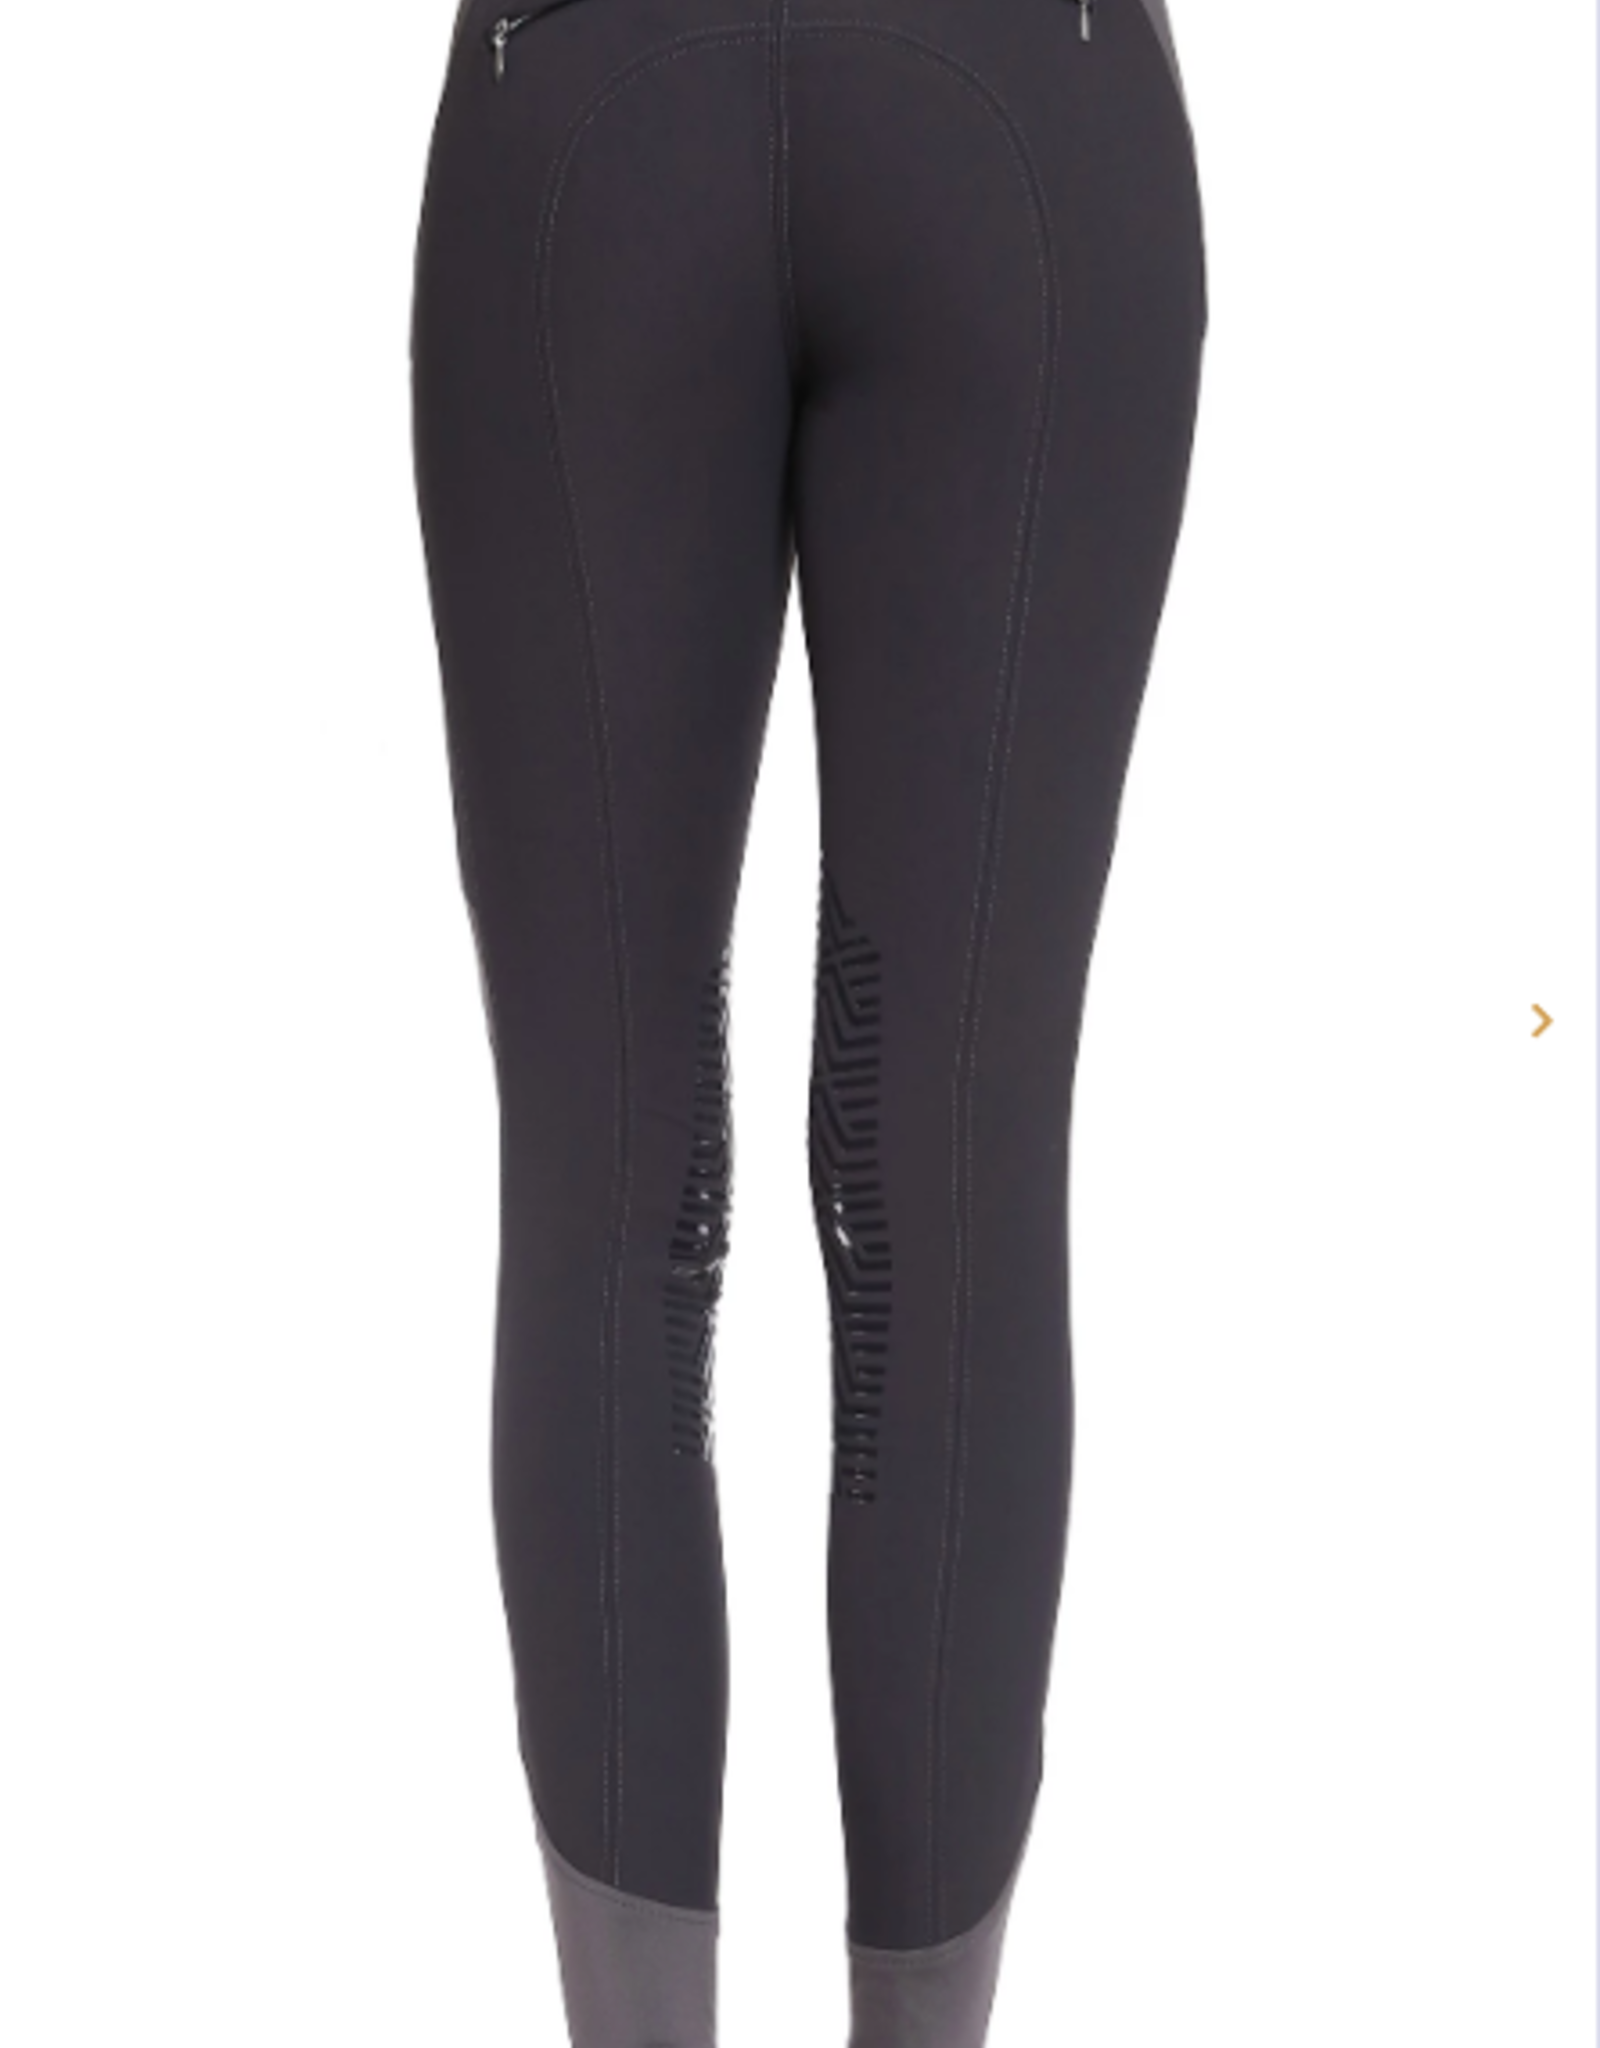 GhoDho Ladies' Tinley Pro Meryl Knee Patch Breeches